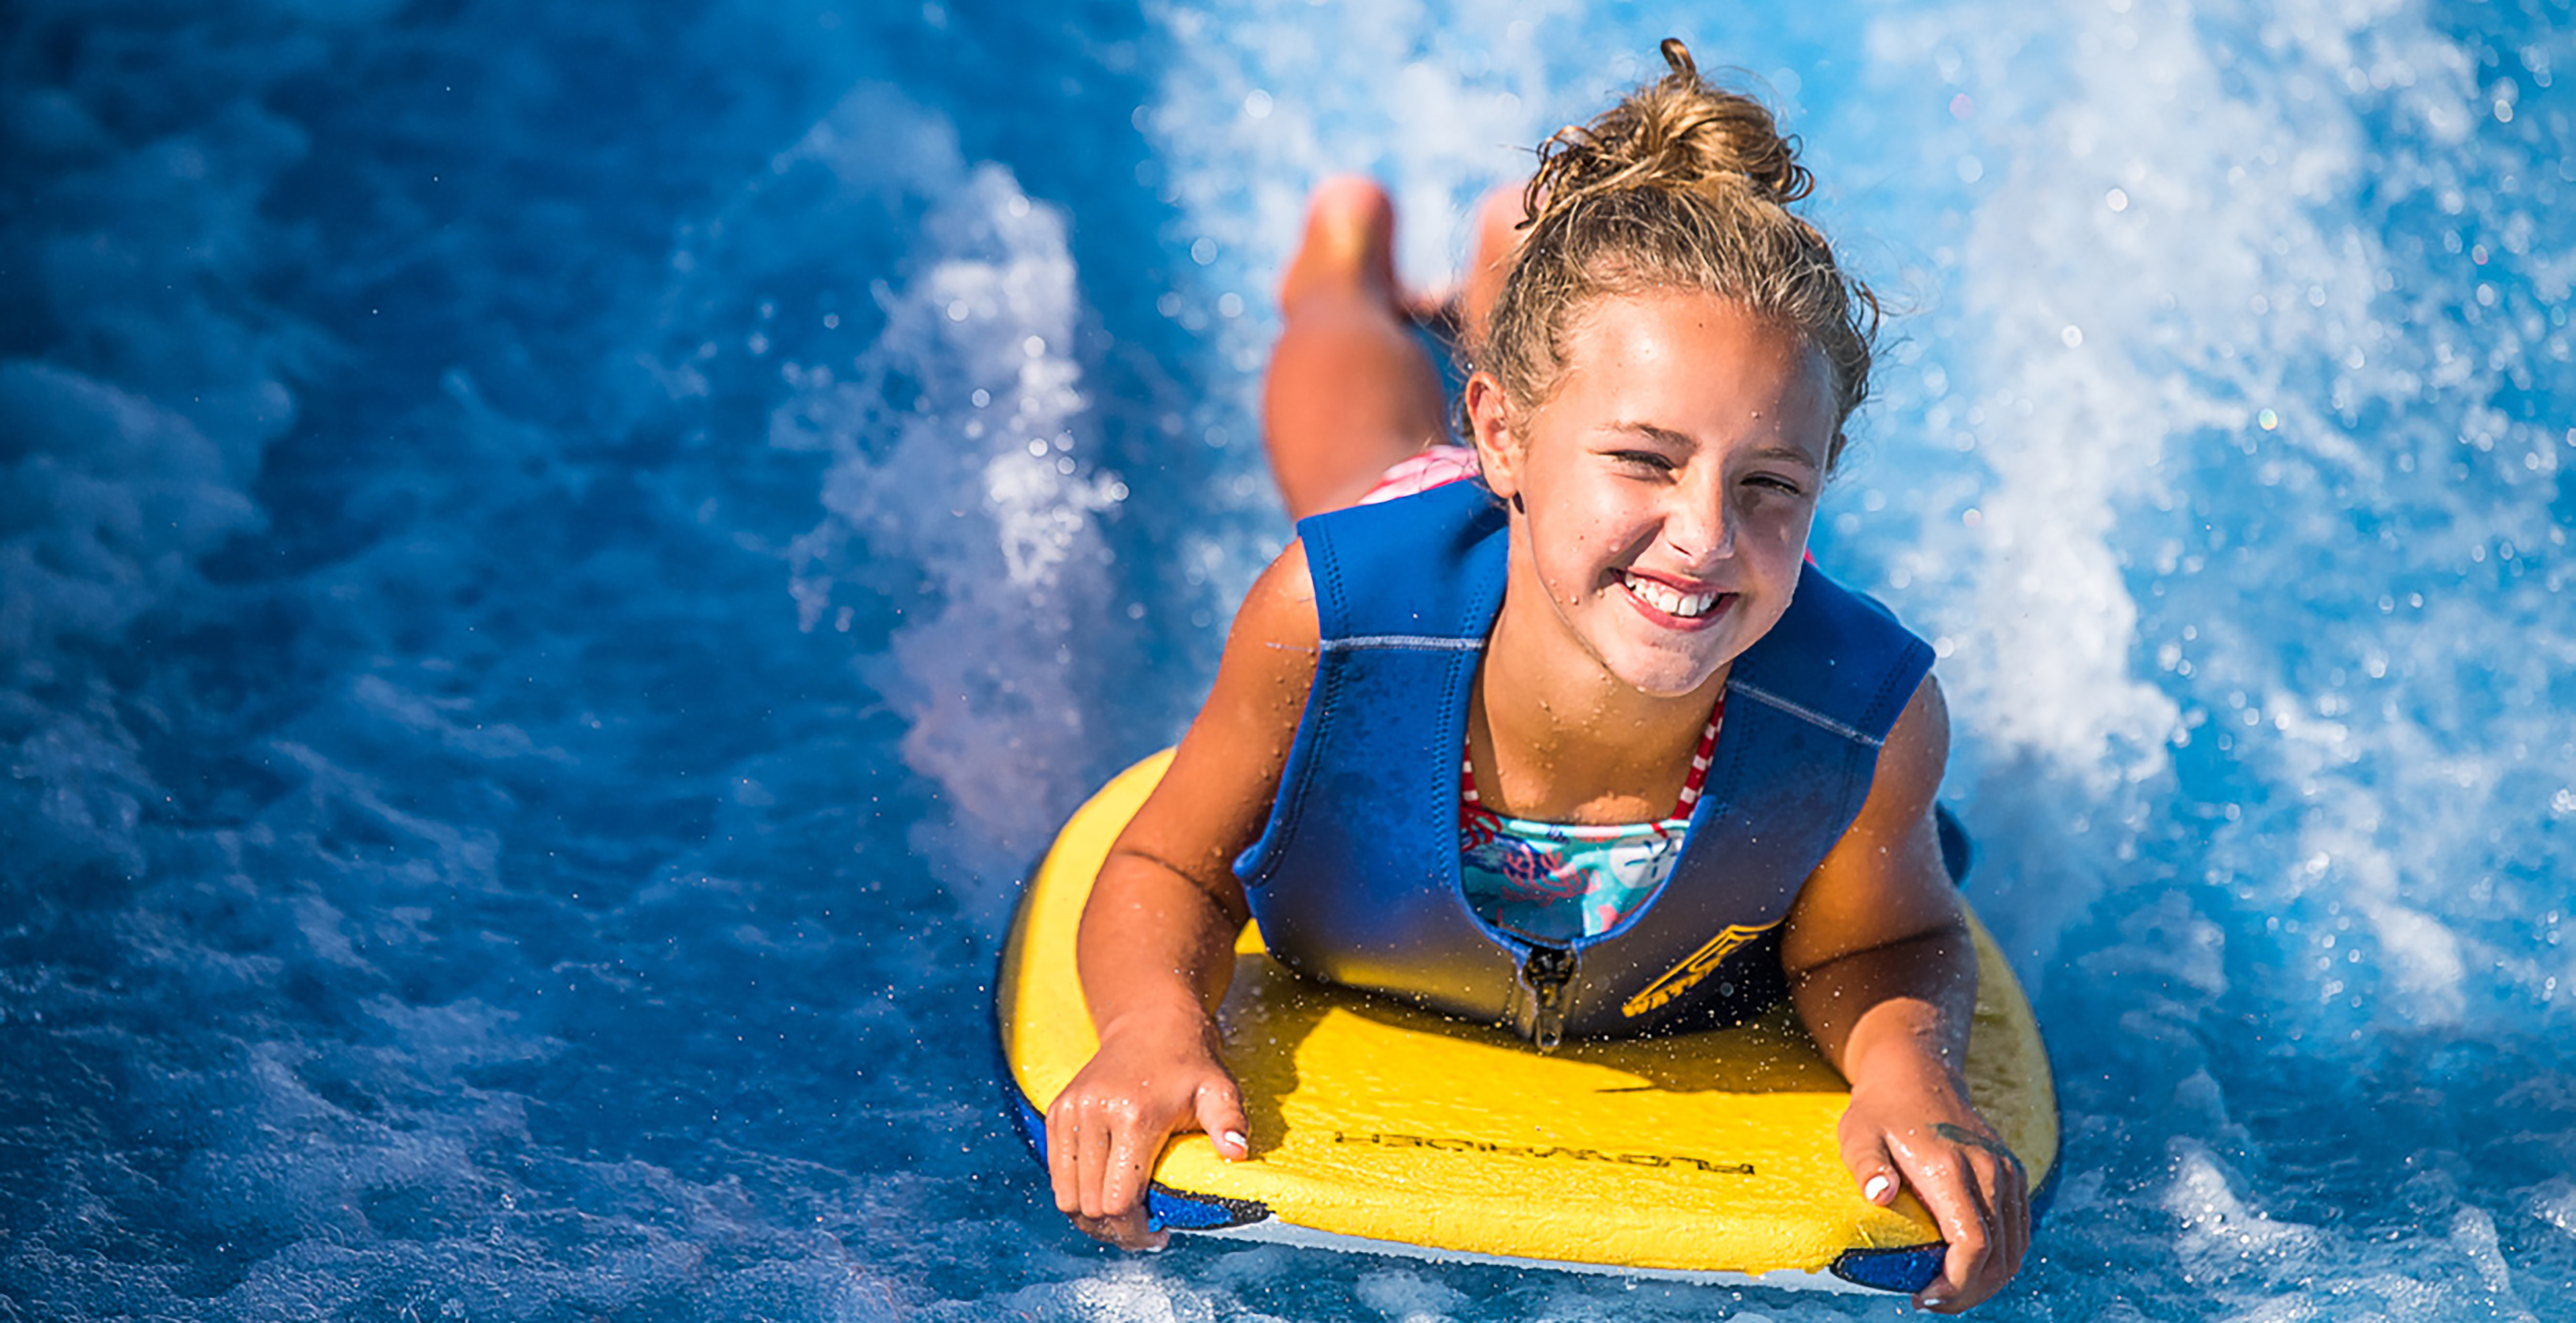 Girl on the FlowRider